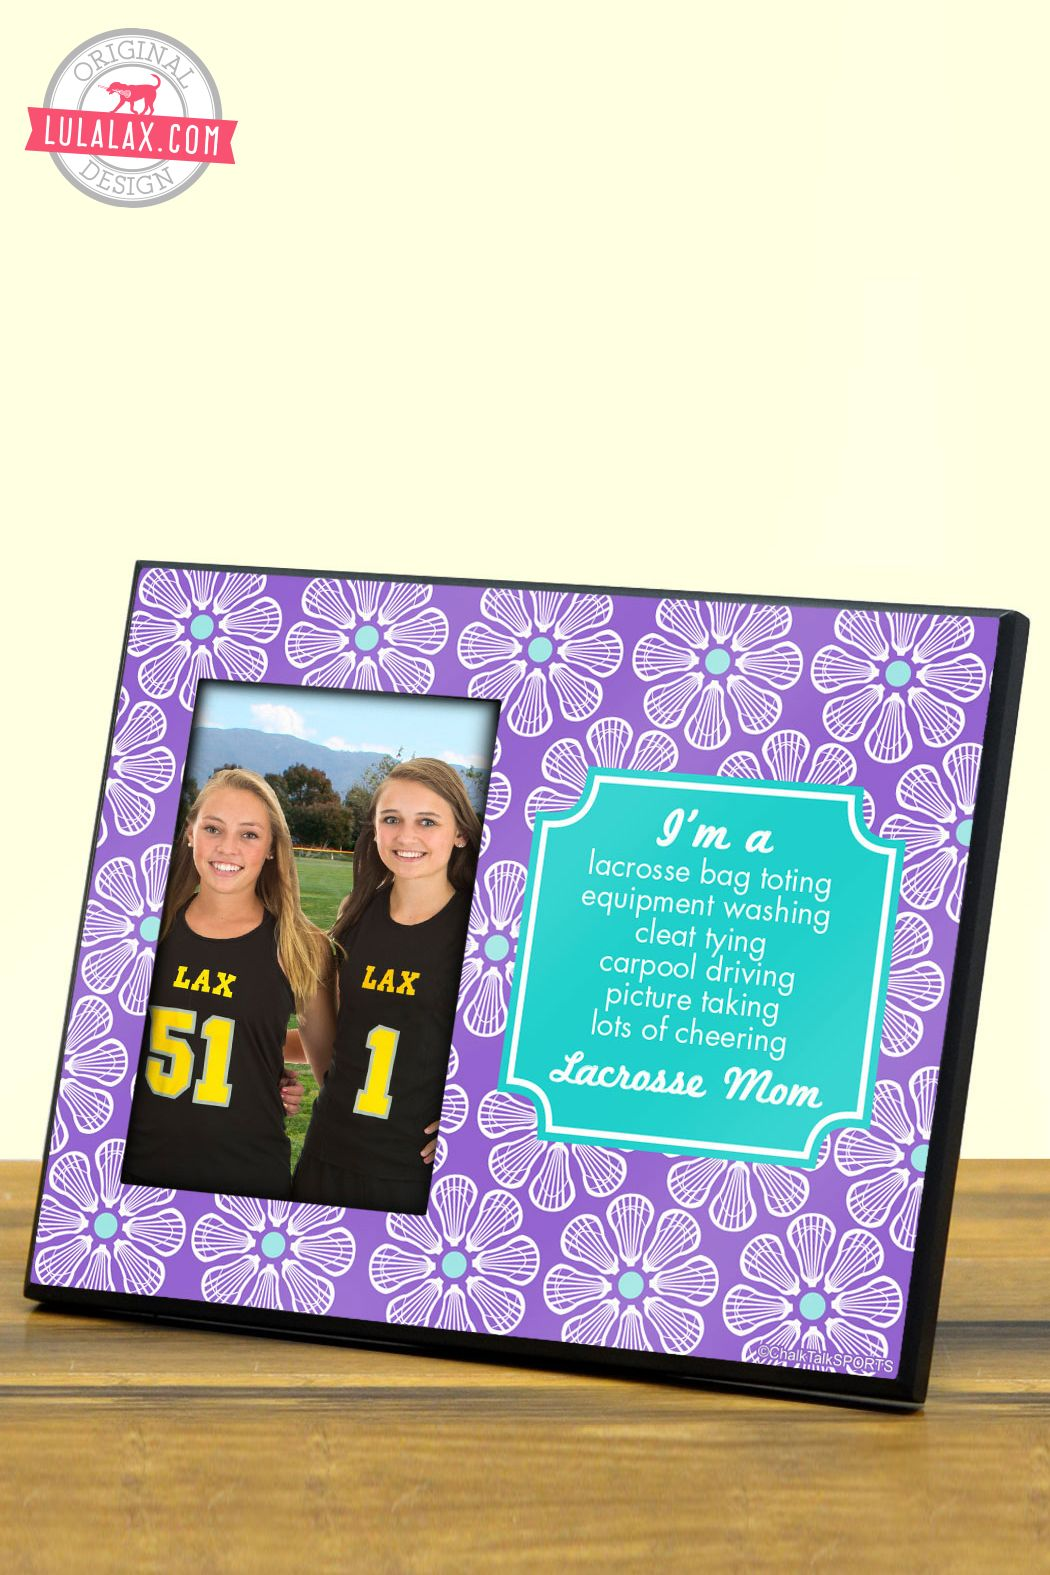 Mommy Frames: The Perfect Gift For A Lacrosse Mom On Mother's Day. Lax